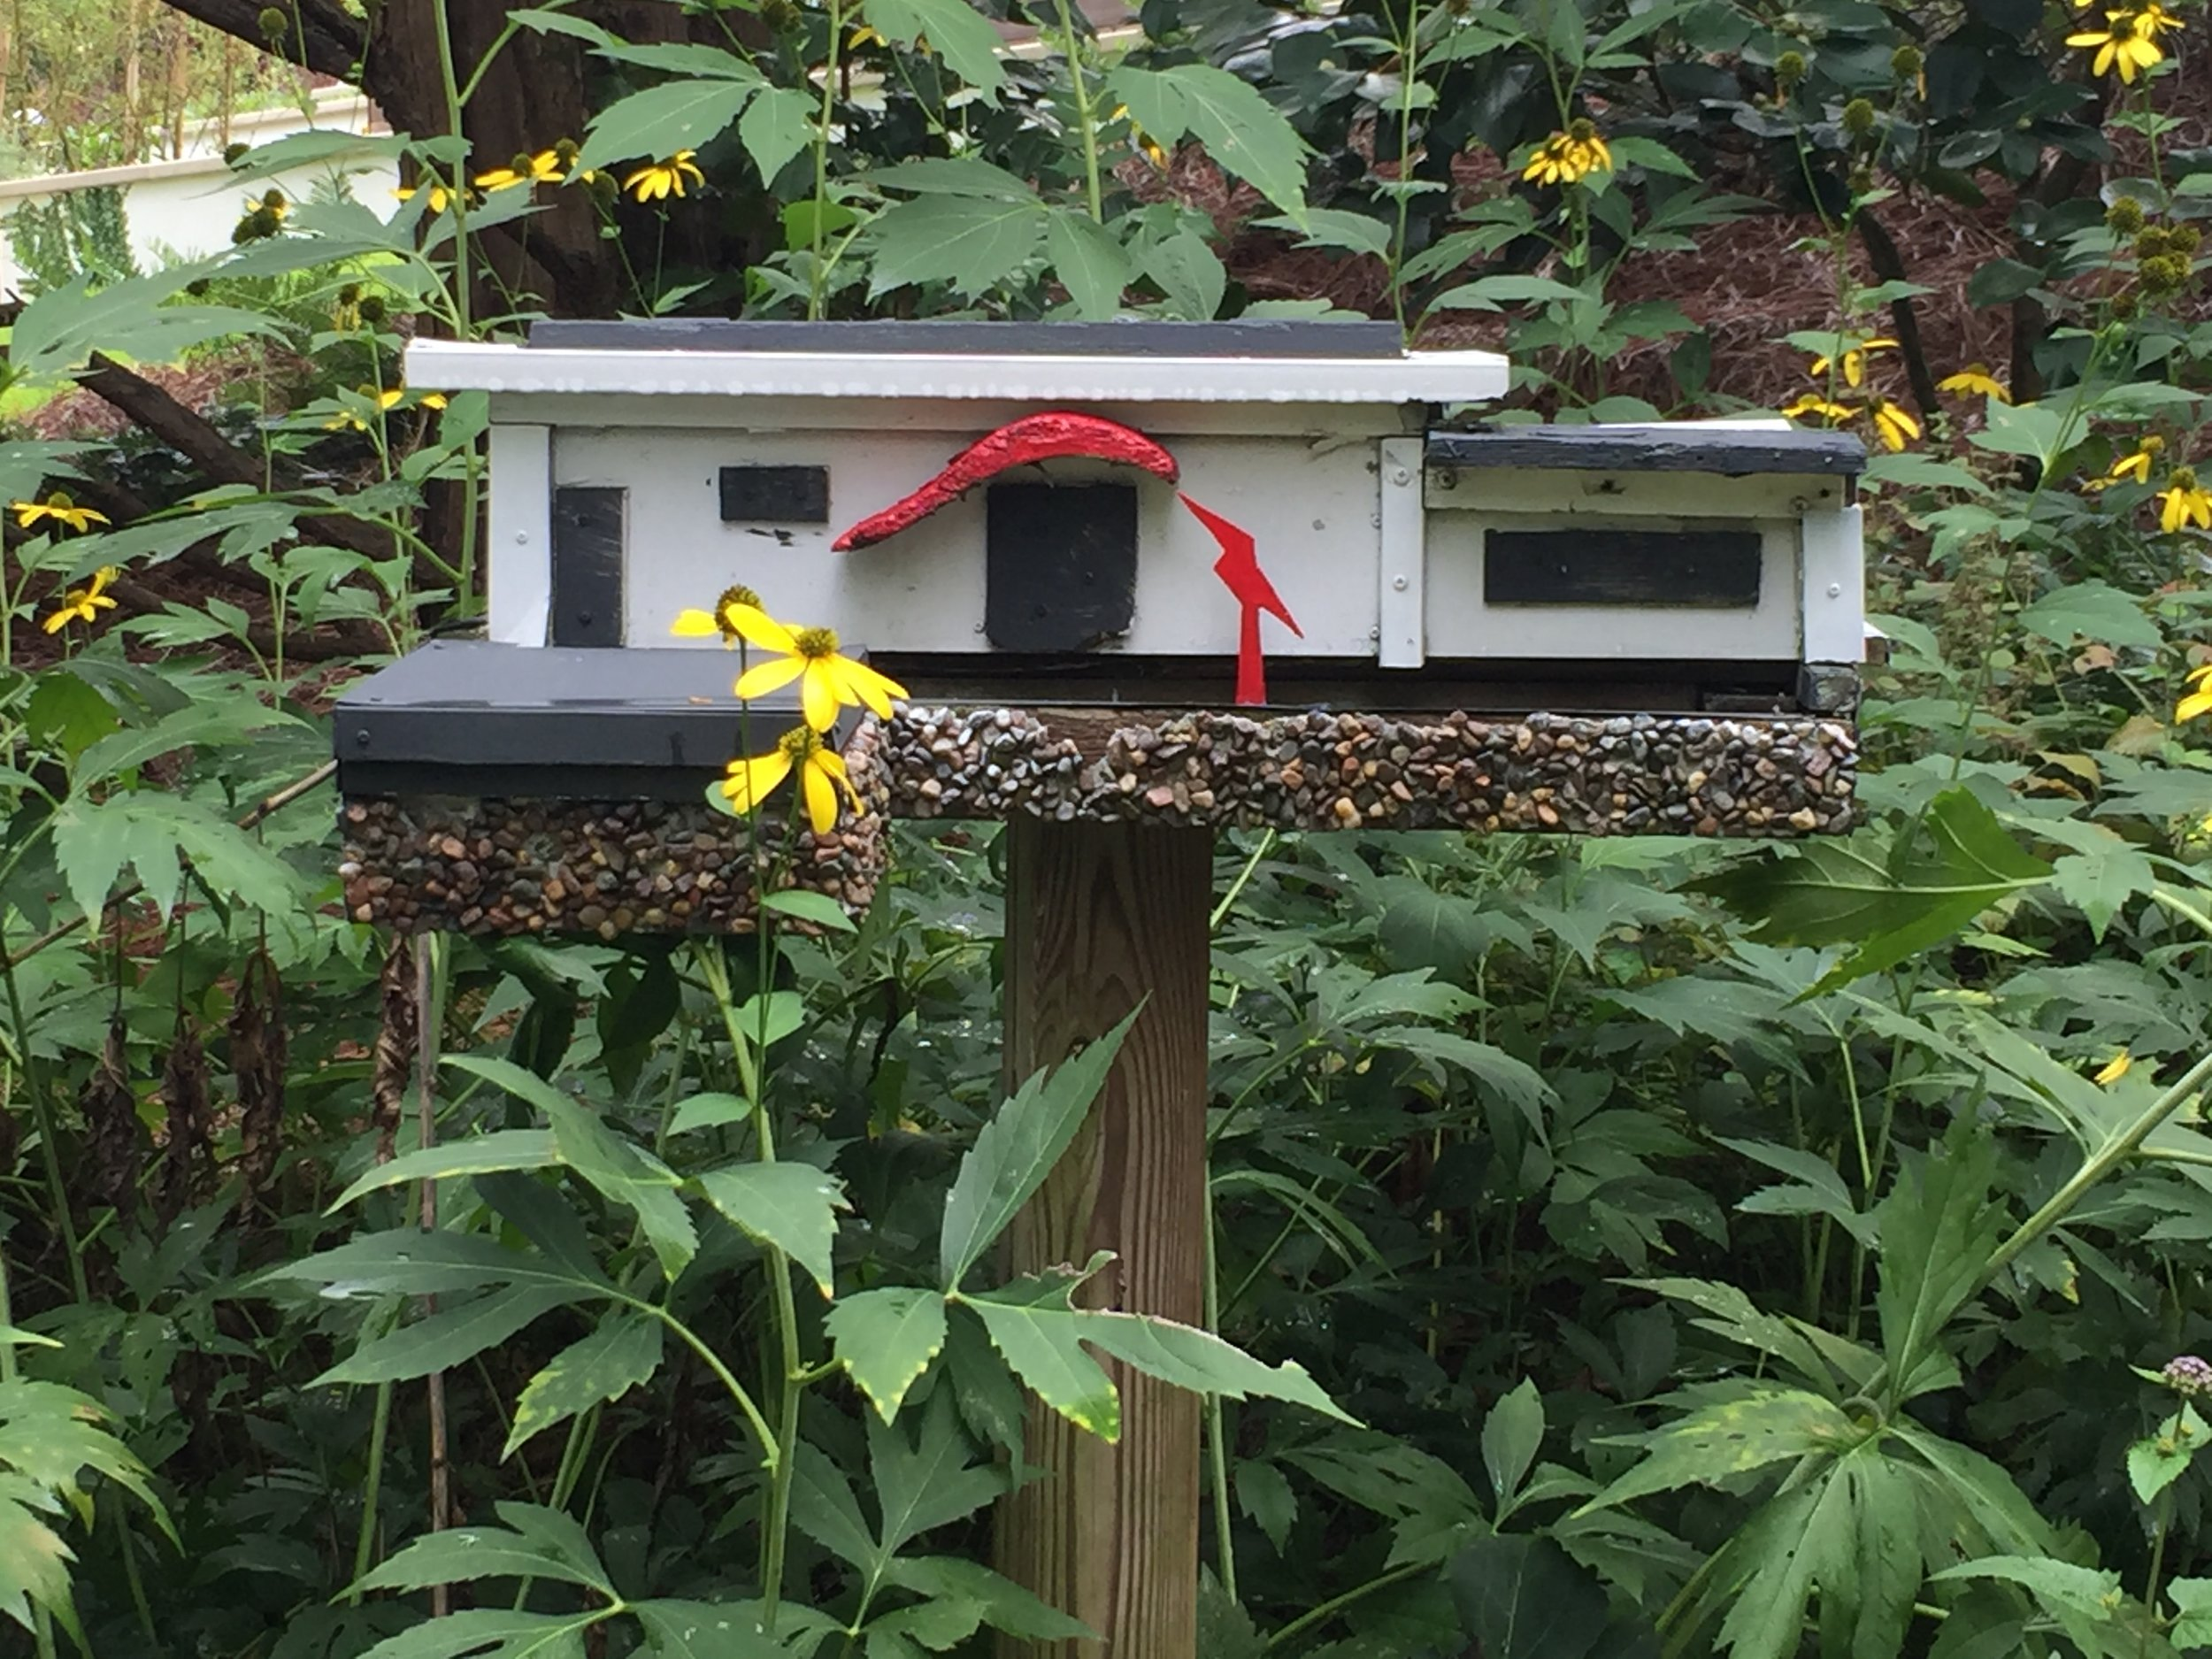 Every bird house had some style.